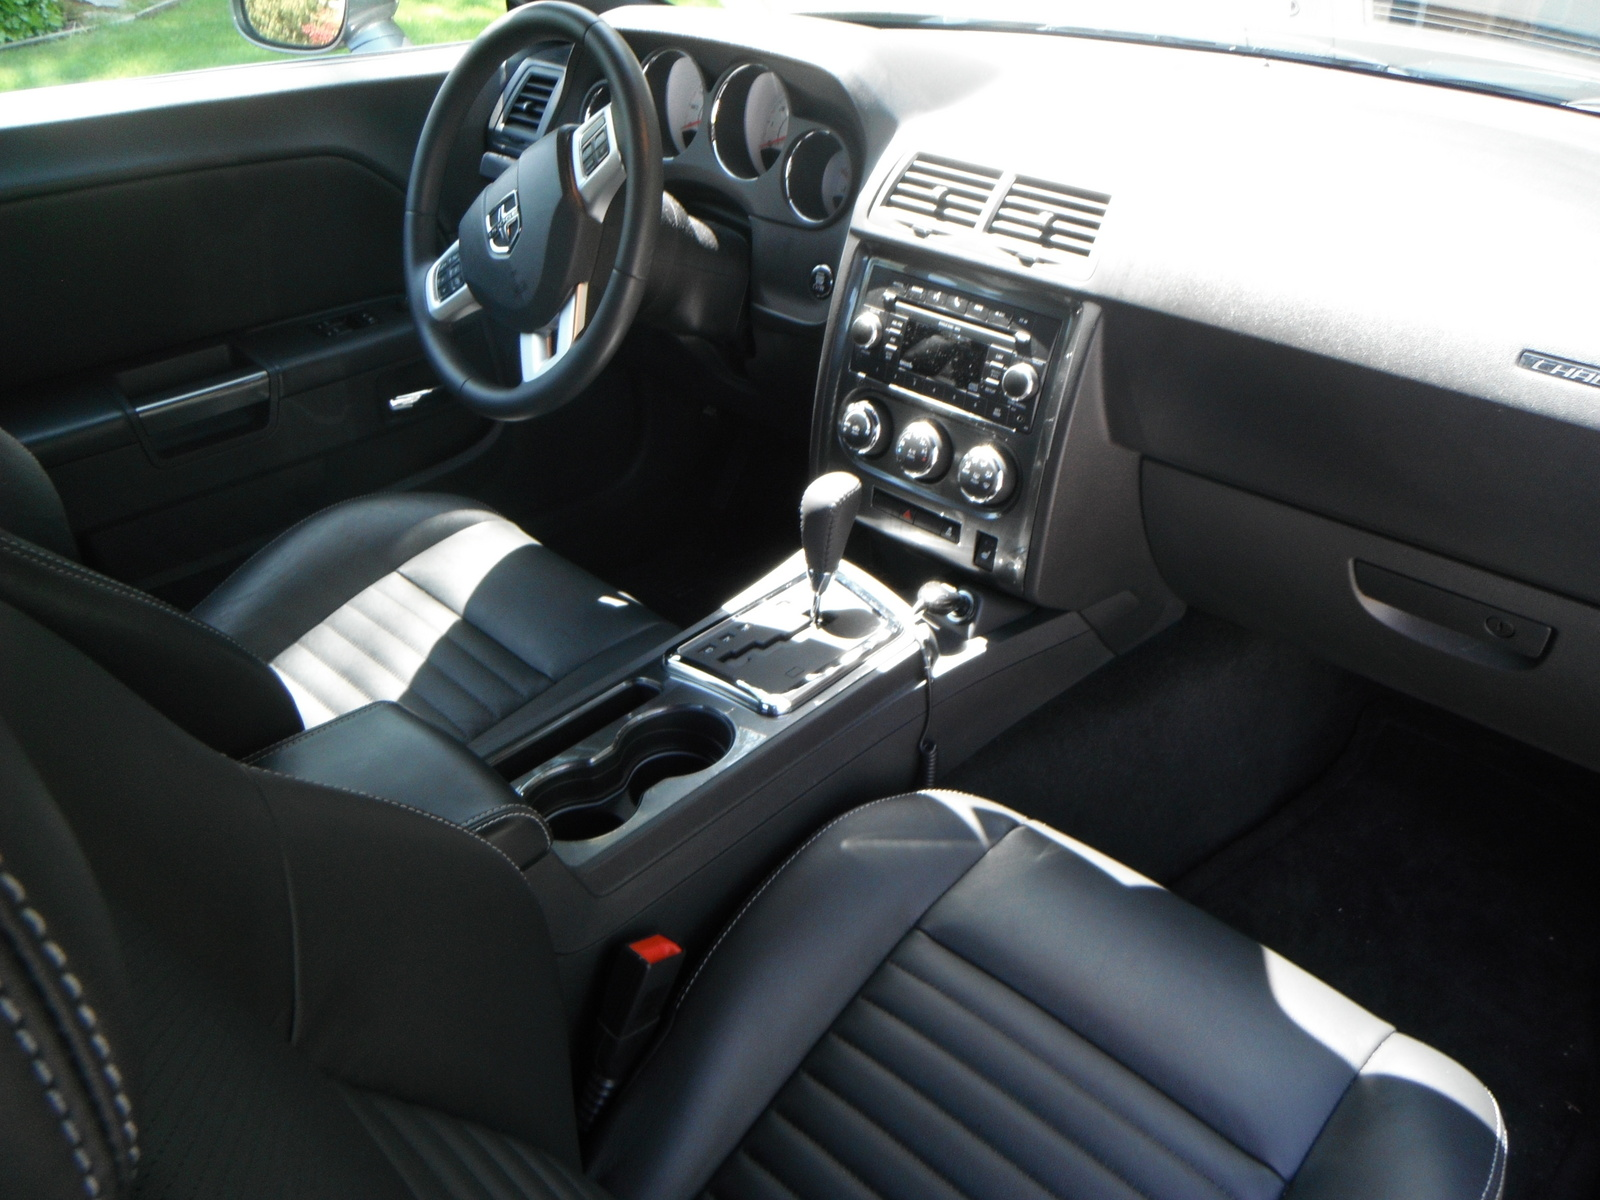 Related Keywords Suggestions For 2012 Challenger Interior